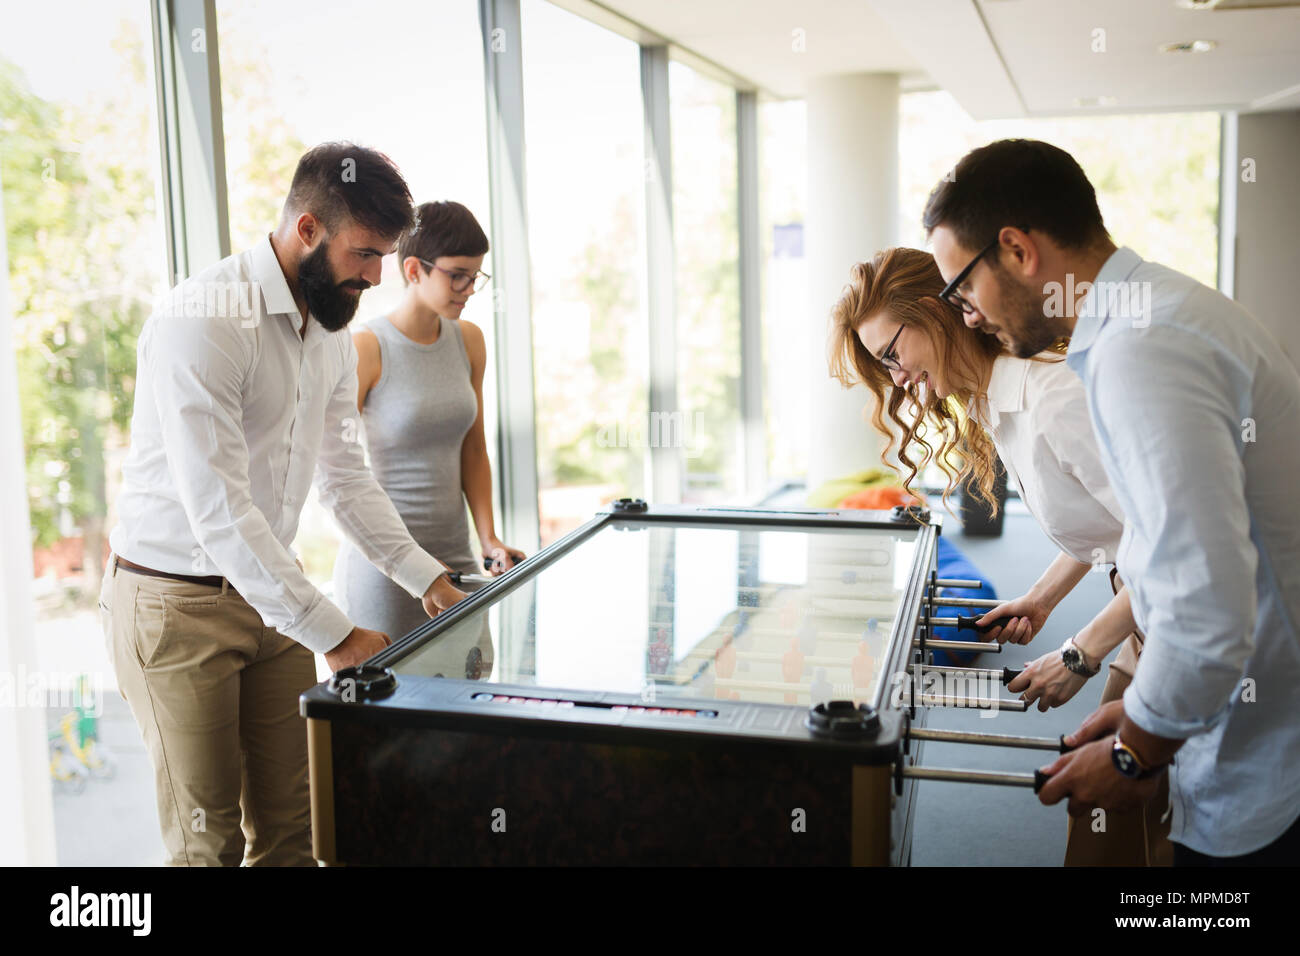 Coworkers playing table football on break from work - Stock Image